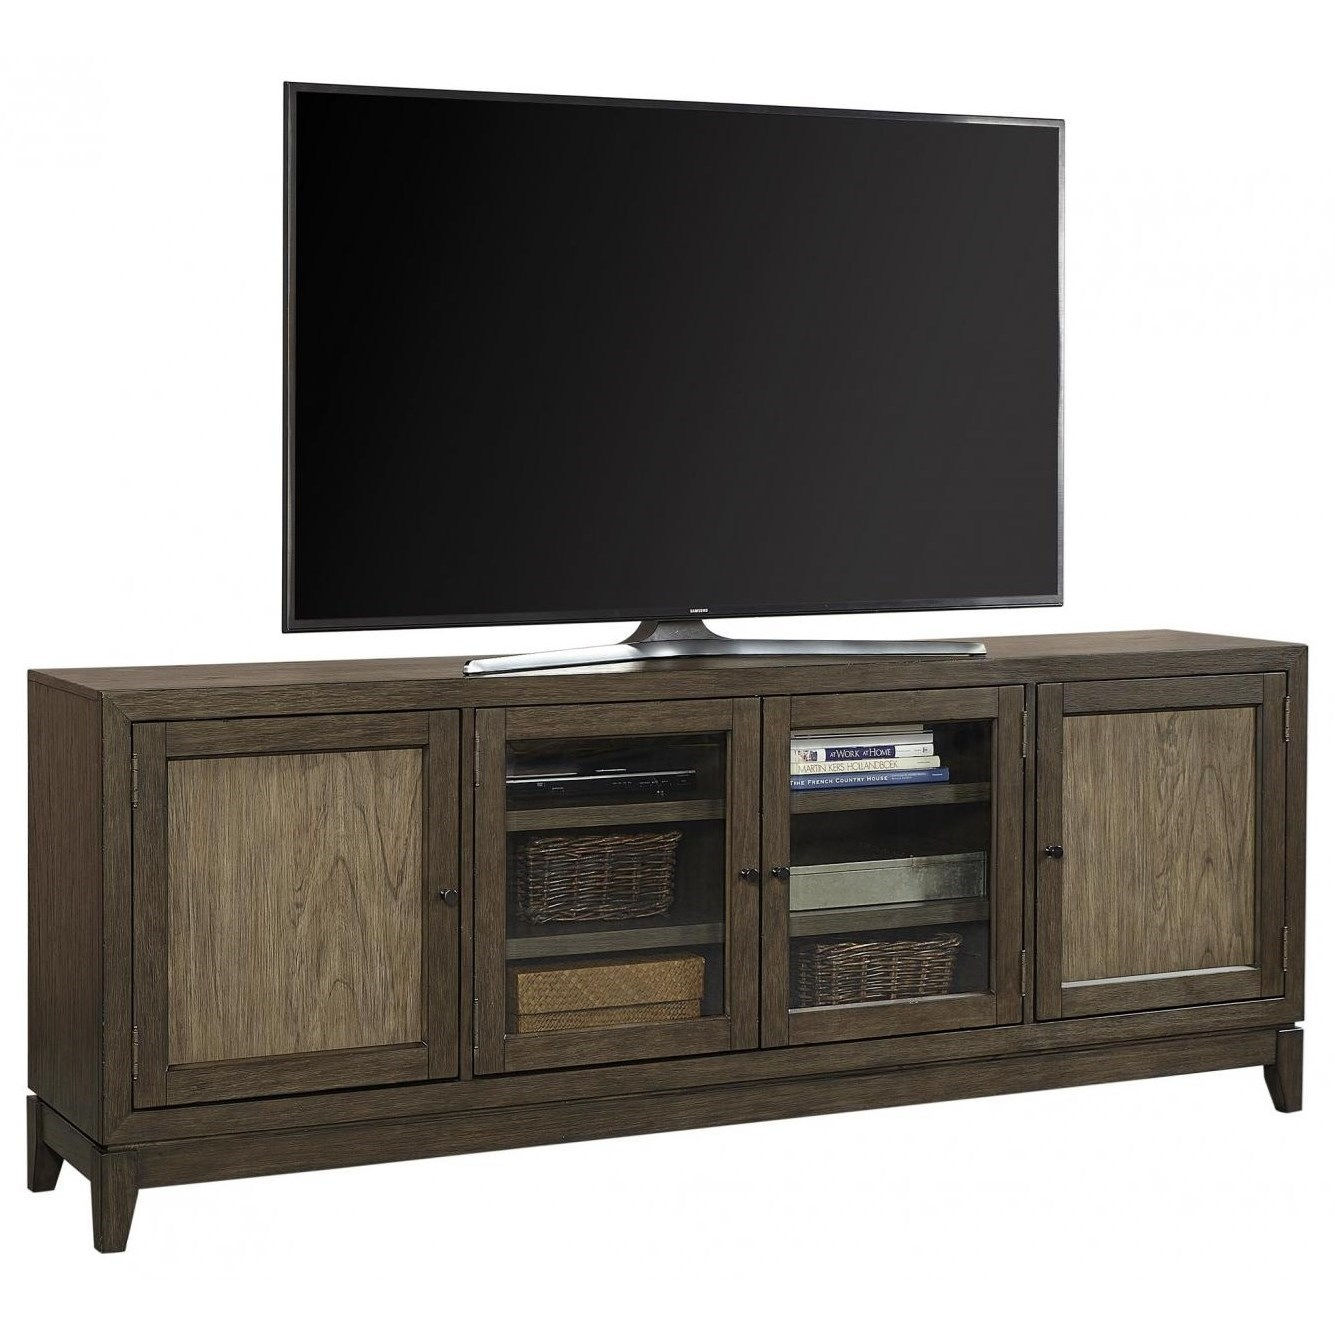 """Westlake 87"""" Console by Aspenhome at Walker's Furniture"""